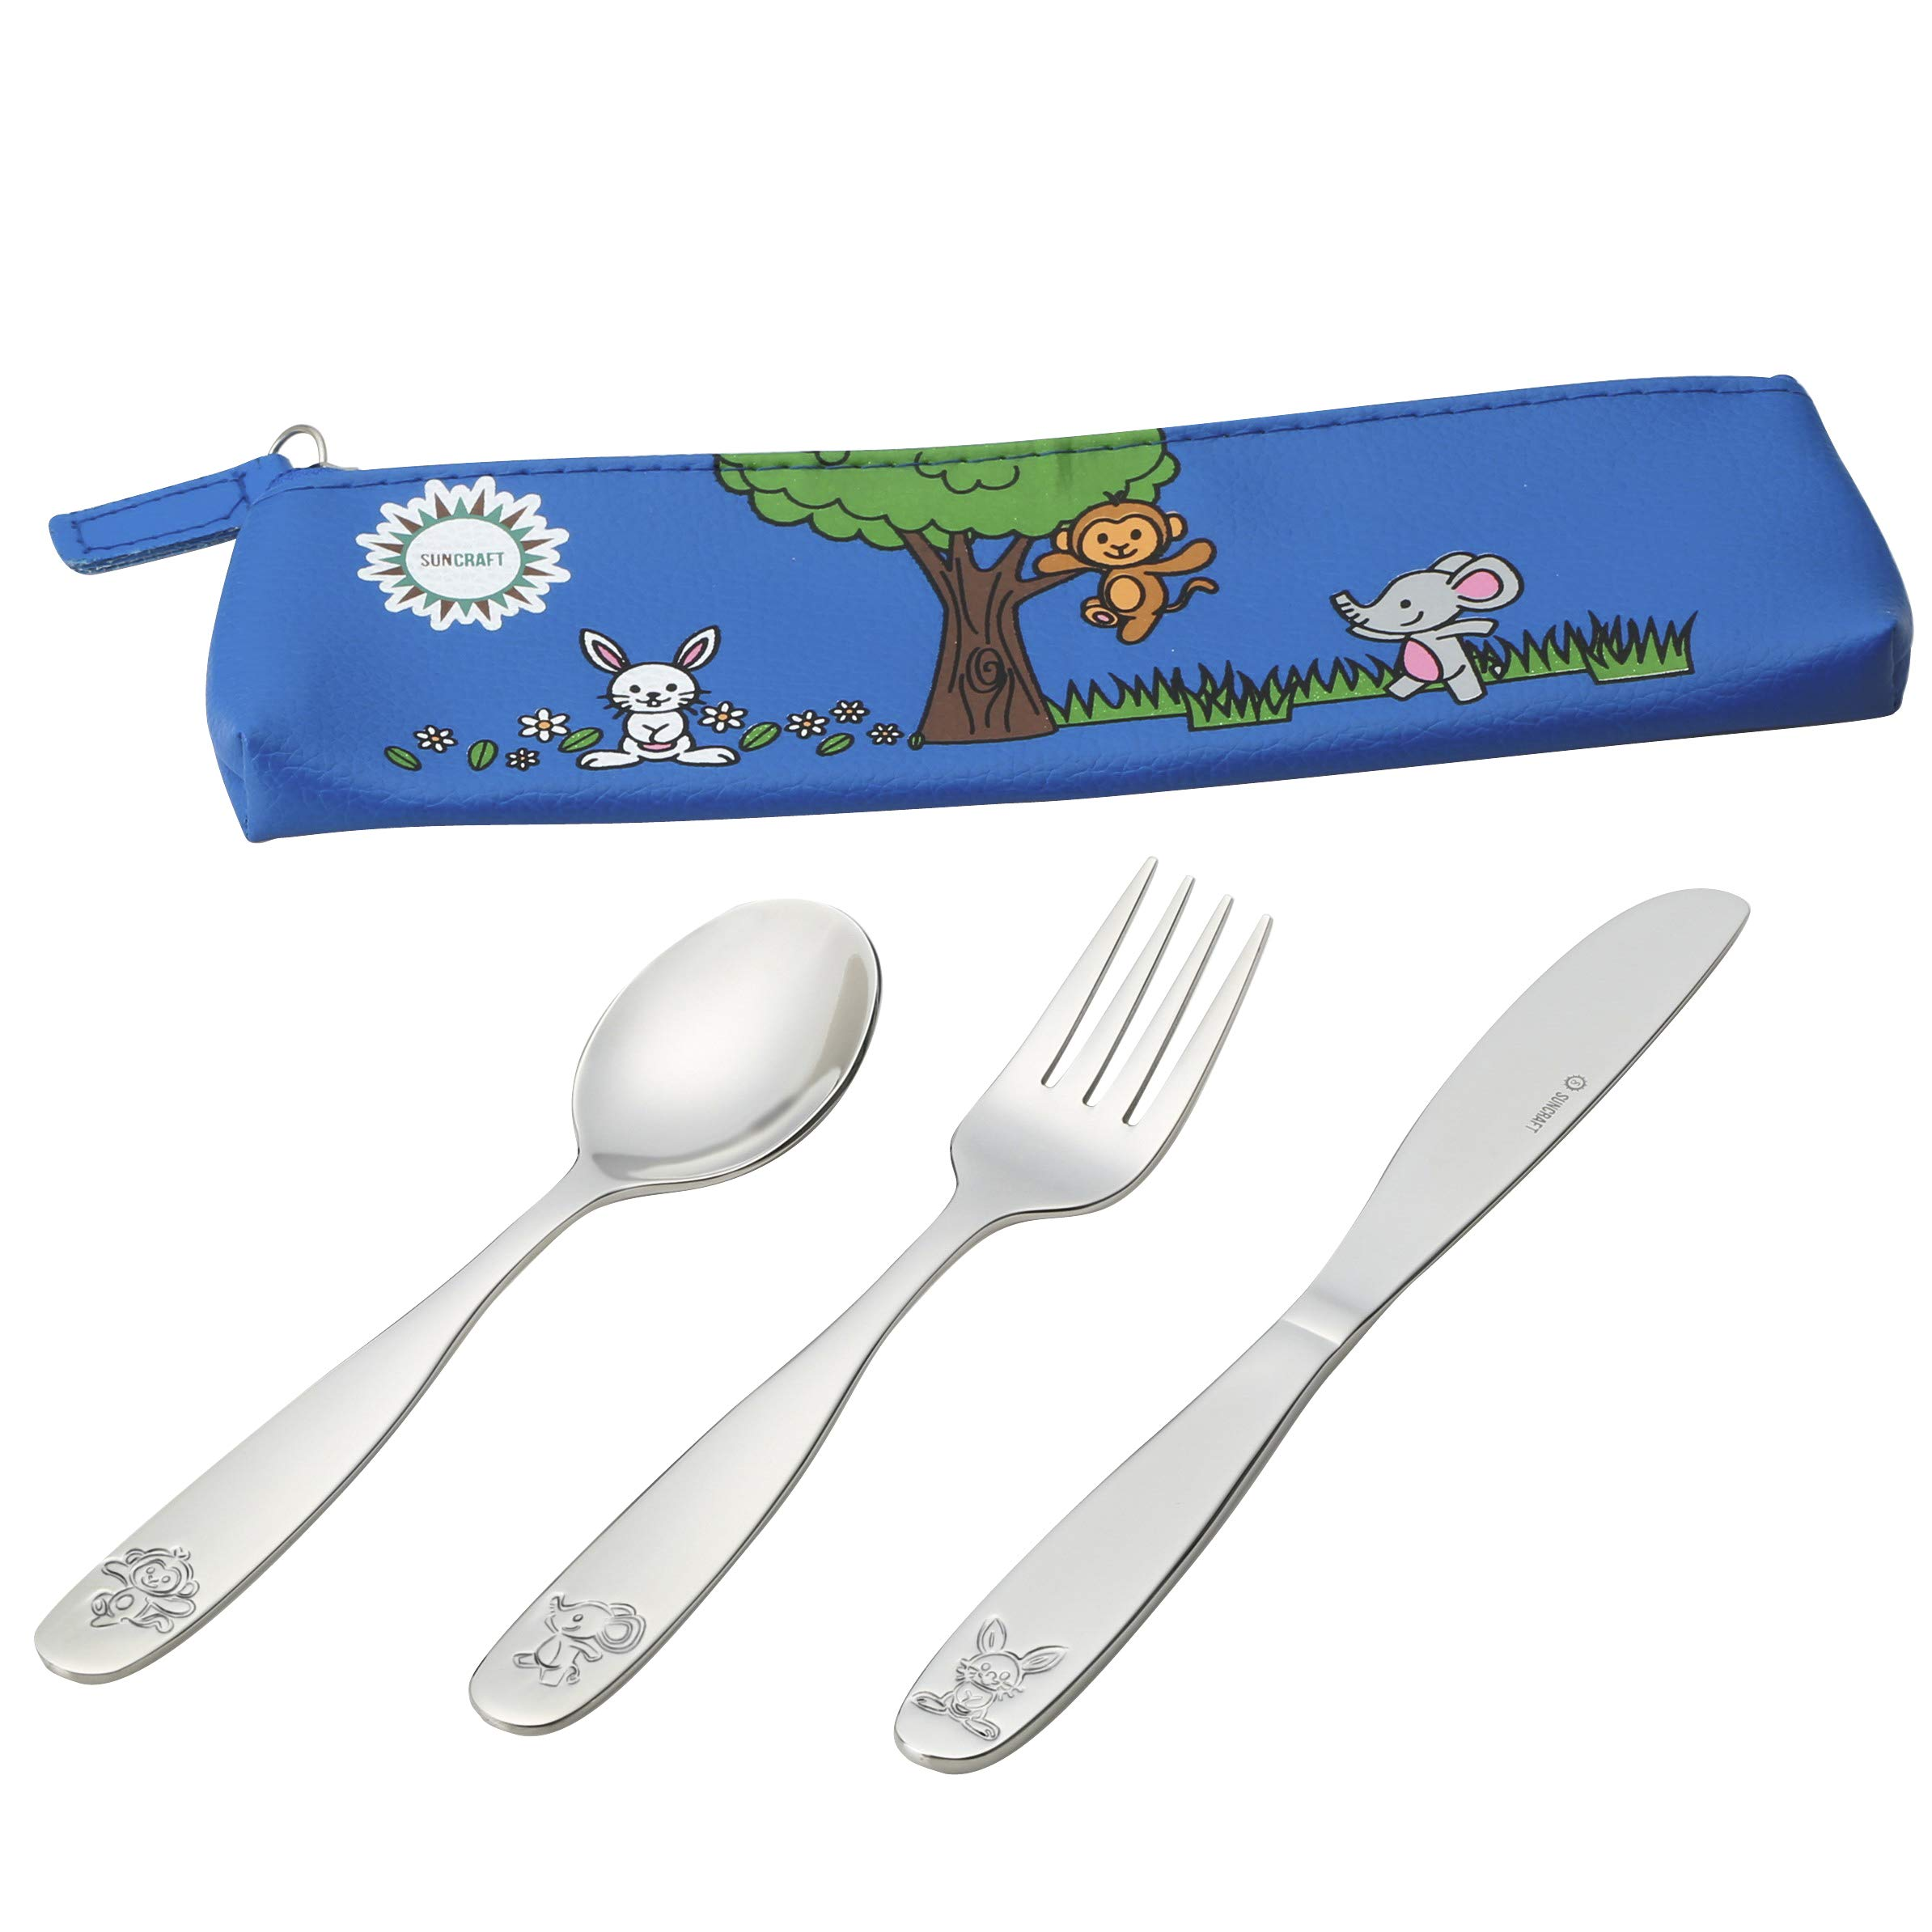 18/10 Stainless Steel Kids Silverware, Child and Toddler Safe Cutlery Flatware - 12 Piece Eating Utensil Set with 4 Knives, 4 Forks, 4 Spoons - Portable Travel Carrying Pouch Included by SUNZIO